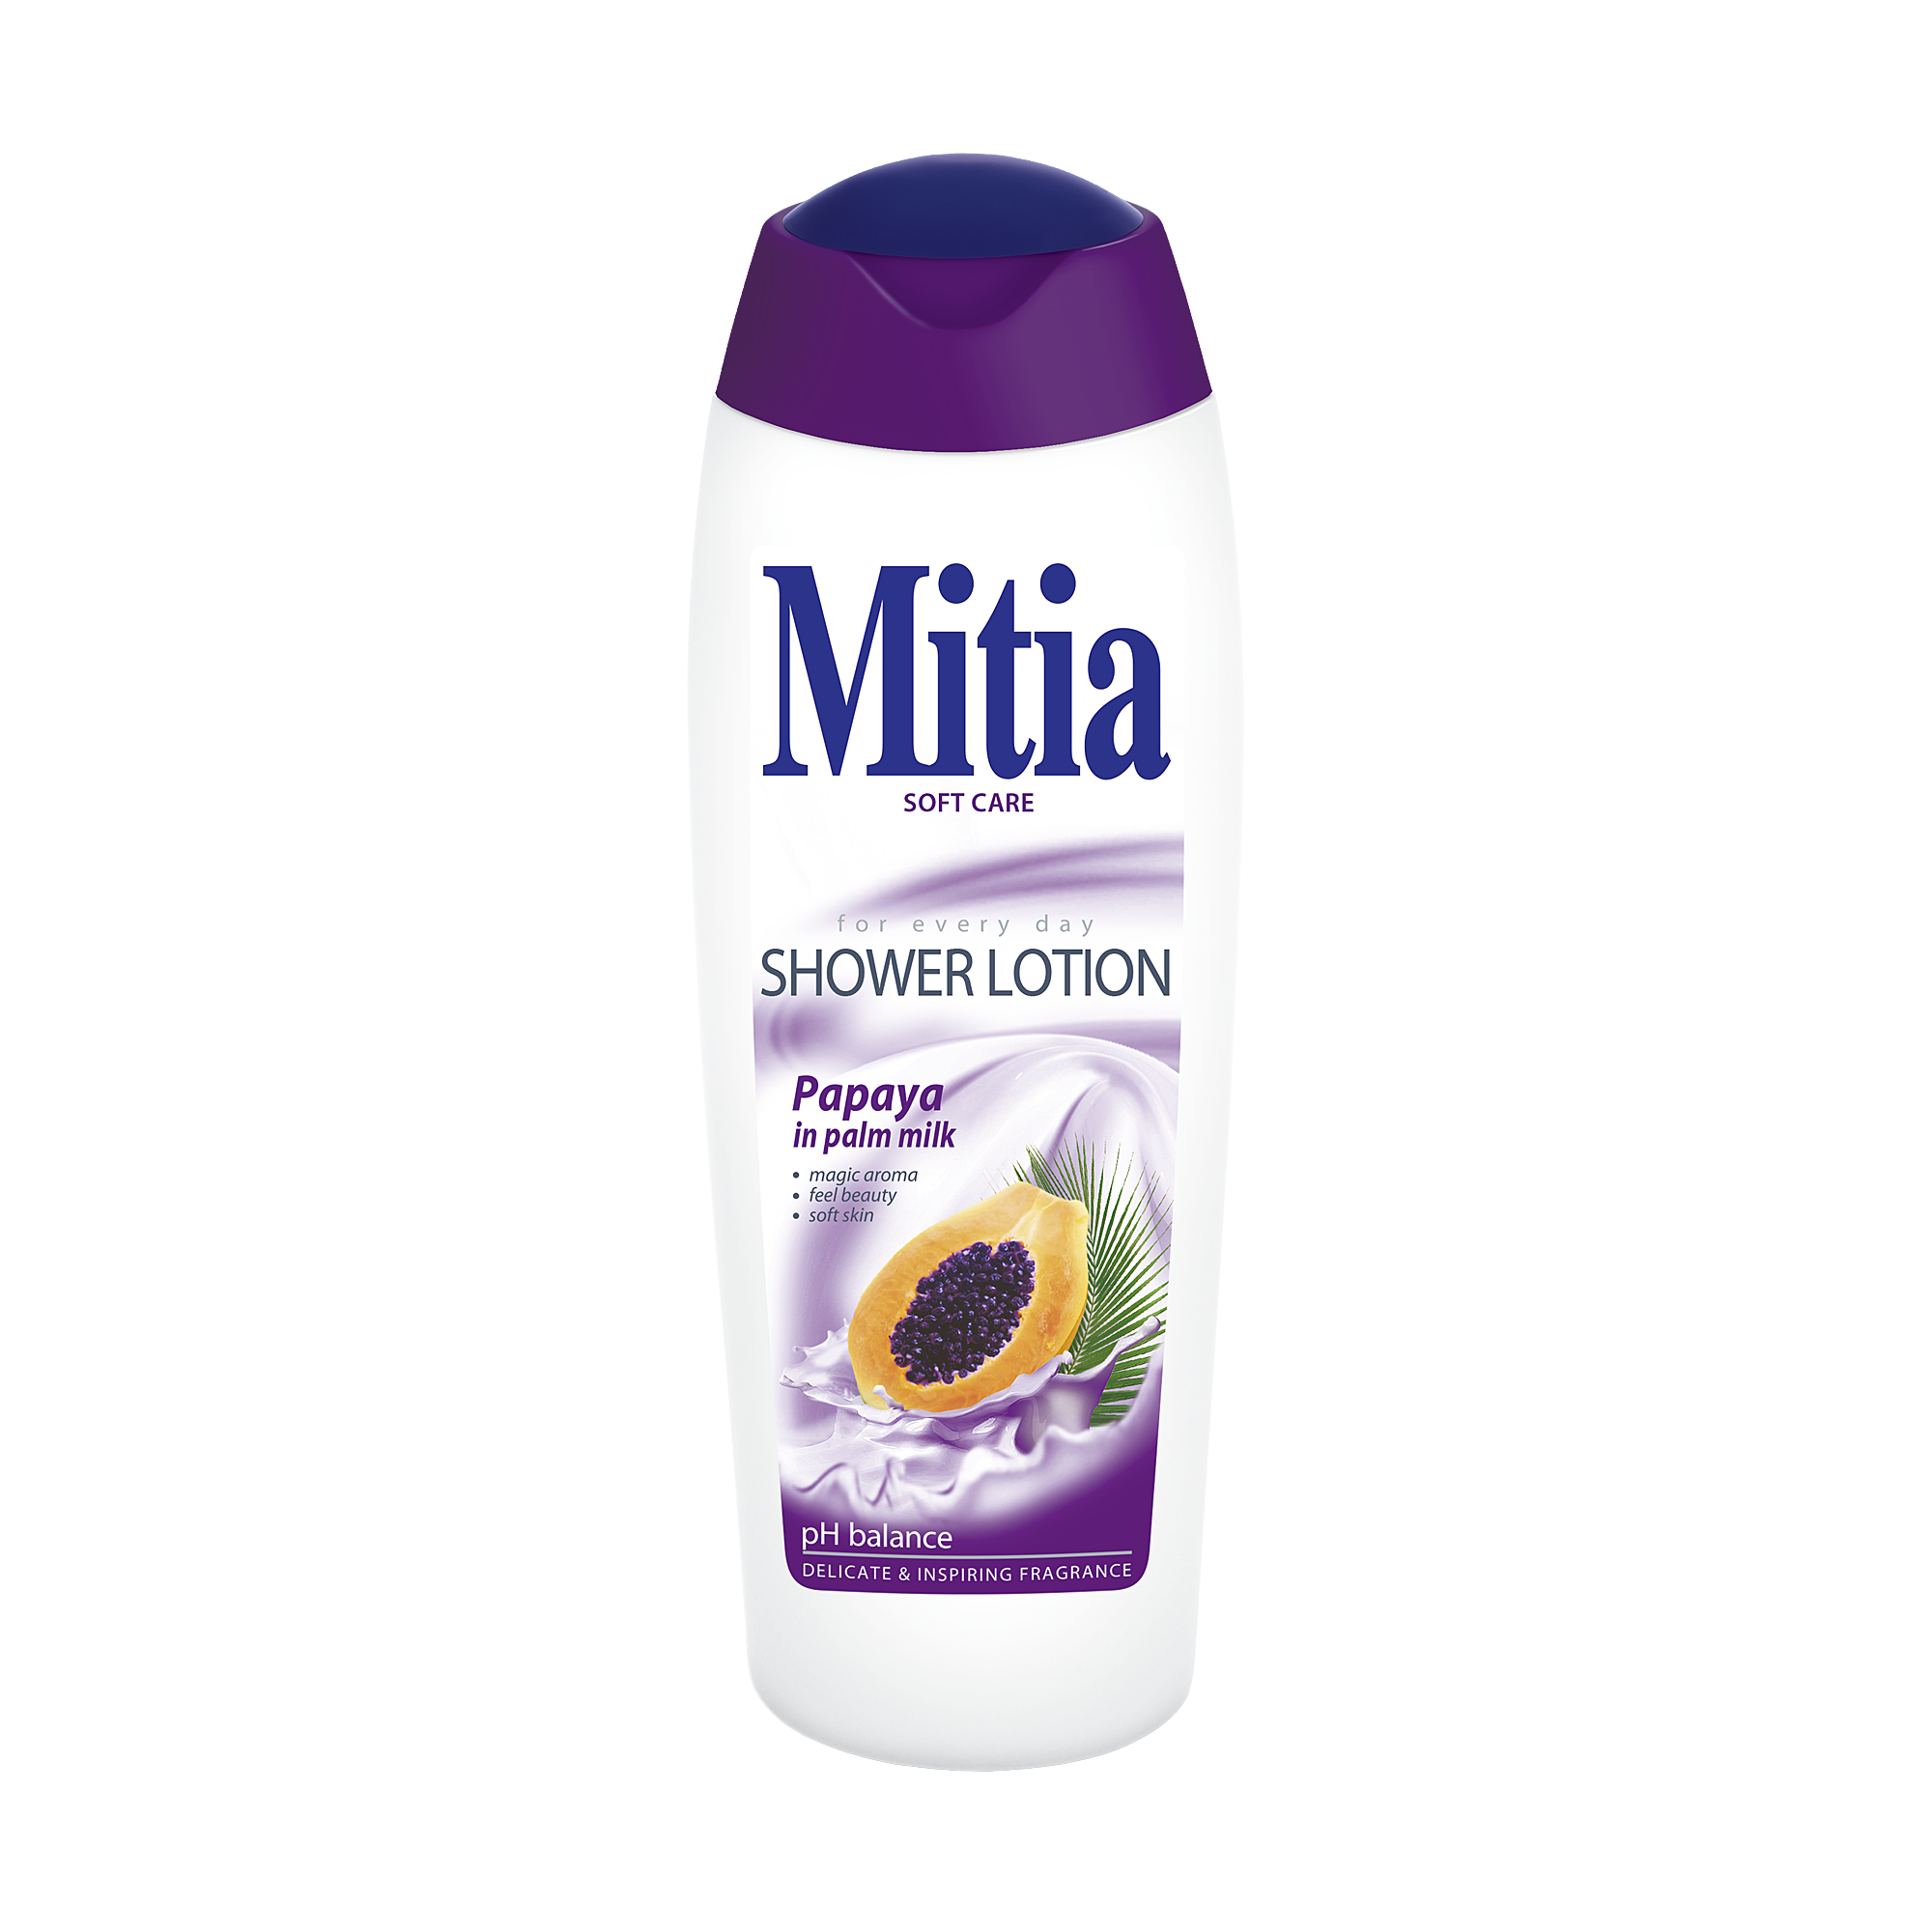 Mitia Papaya in palm milk shower milk